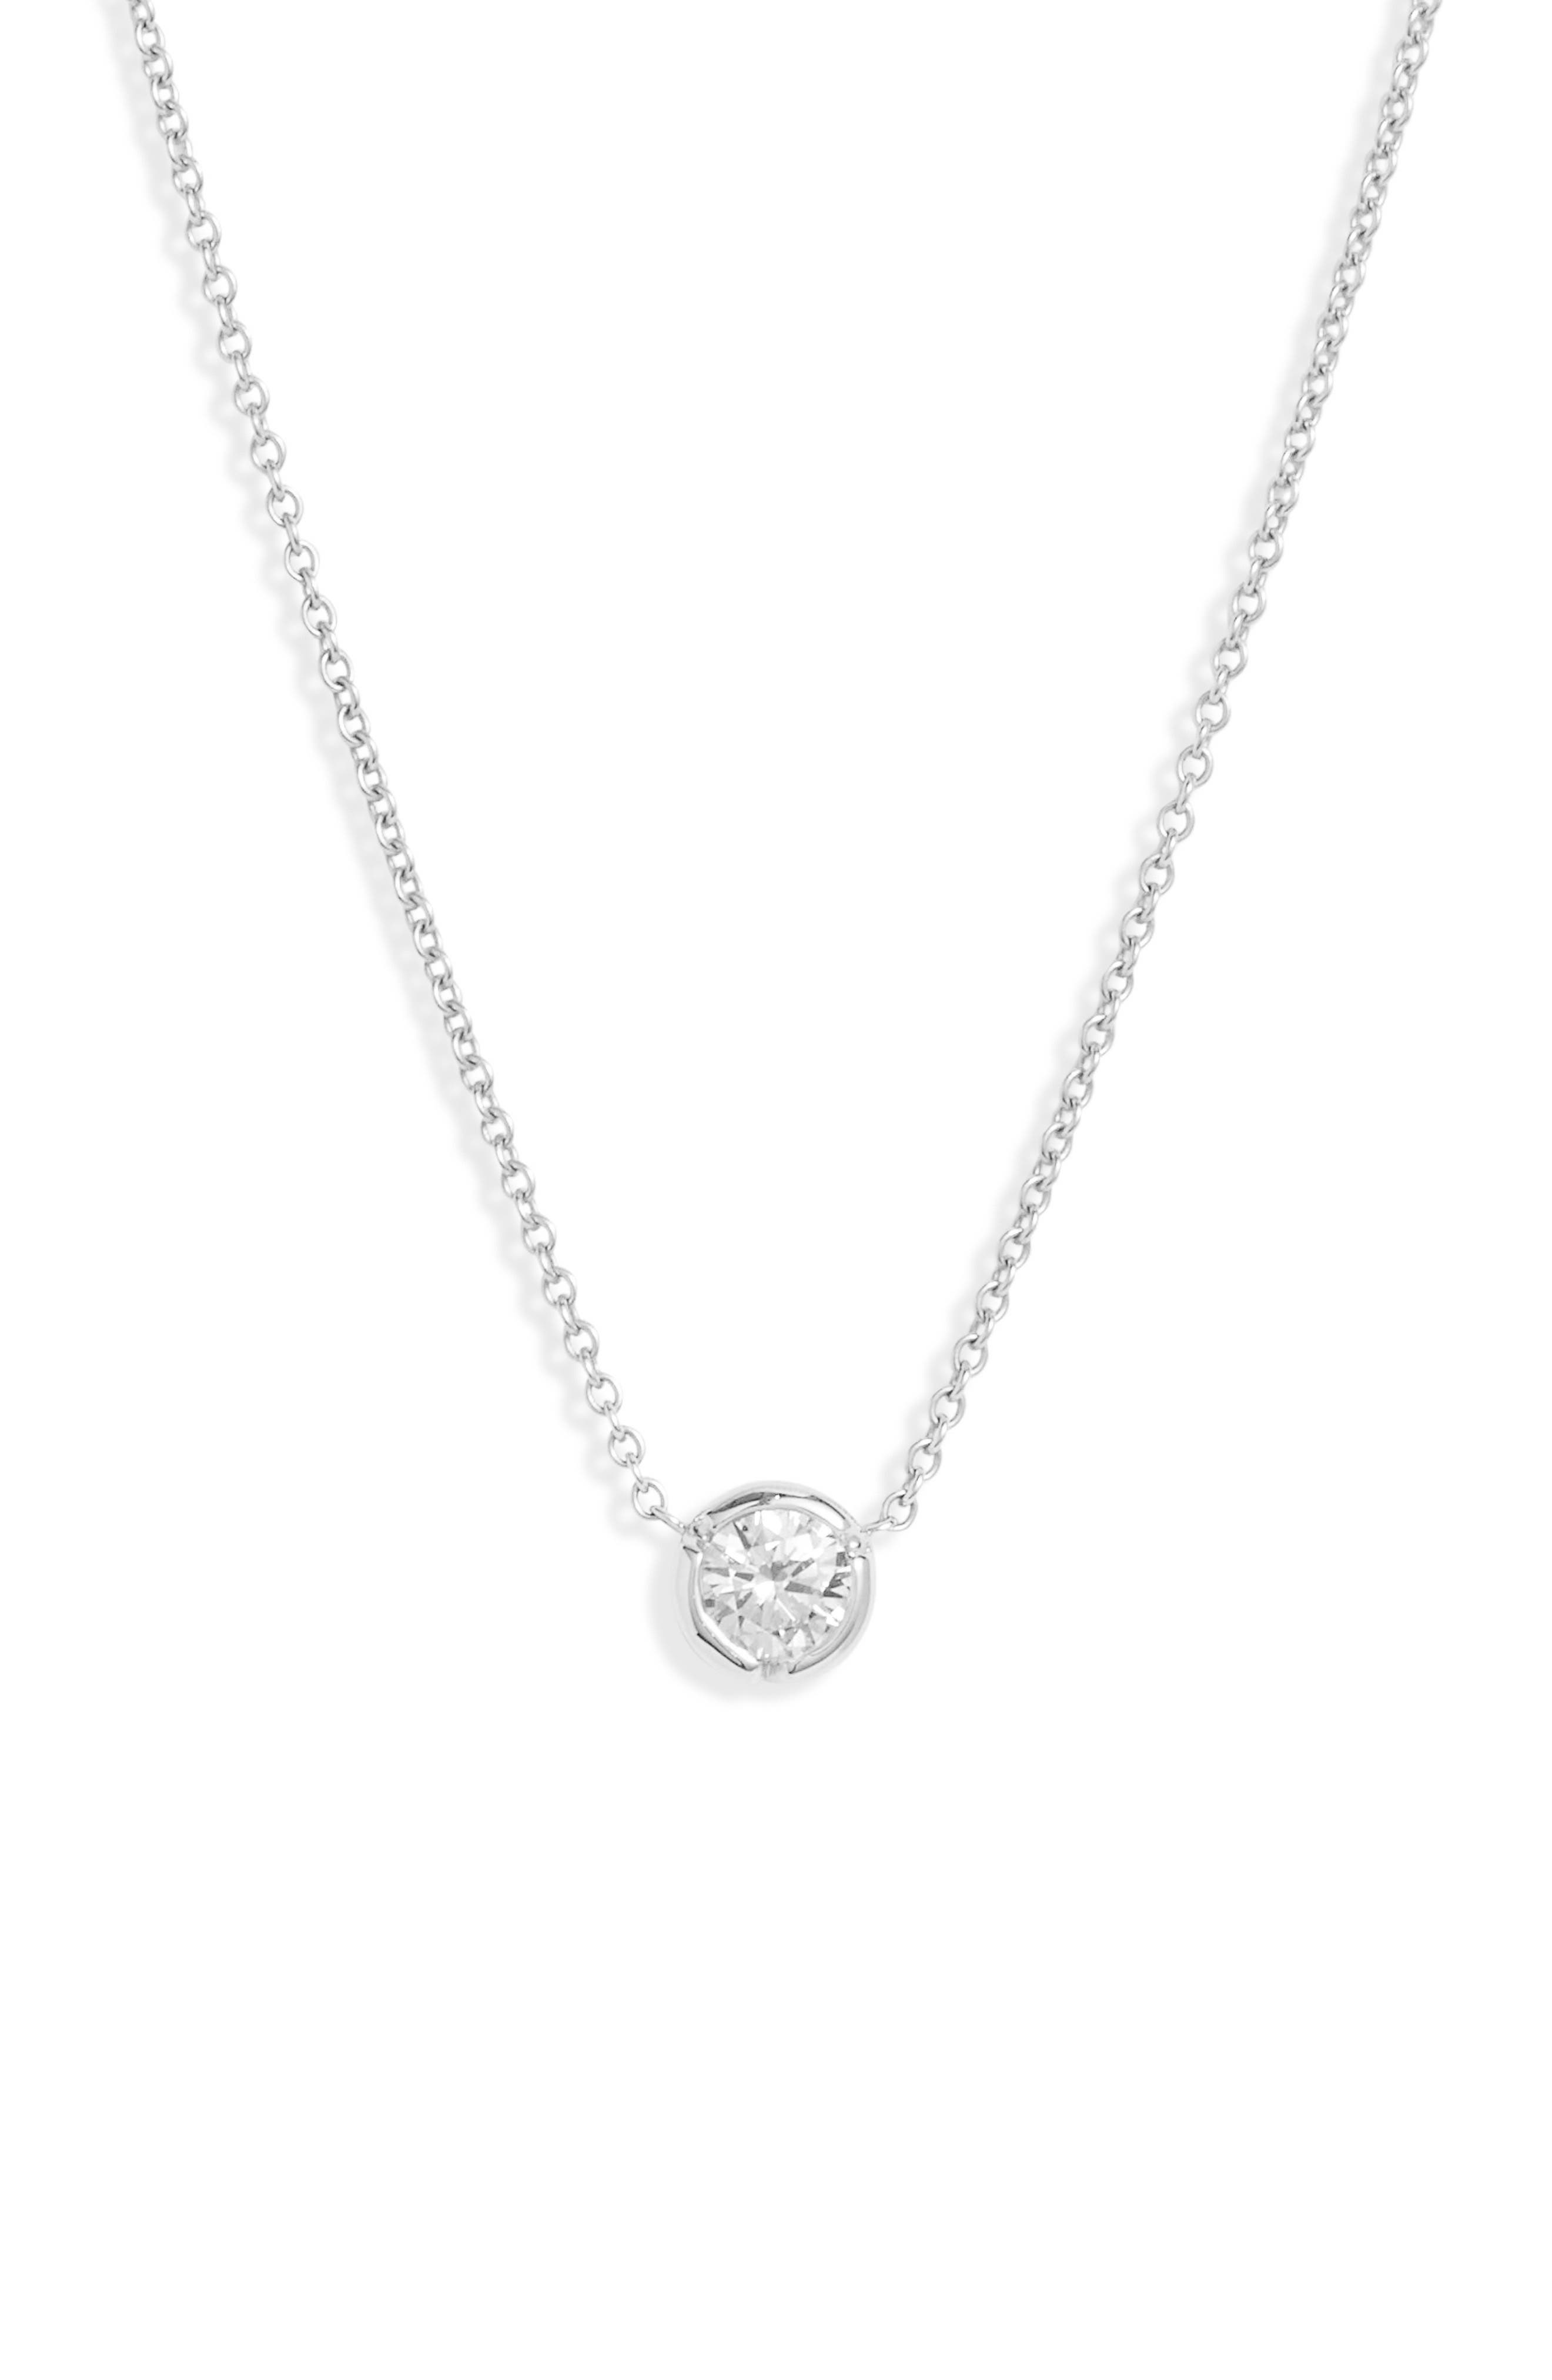 A notched bezel setting refreshes this lovely solitaire necklace that retains its timeless appeal with a fiery round diamond and dainty 18-karat-gold chain. Style Name: Bony Levy Medium Bezel Diamond Solitaire Necklace (Nordstrom Exclusive). Style Number: 5895516. Available in stores.